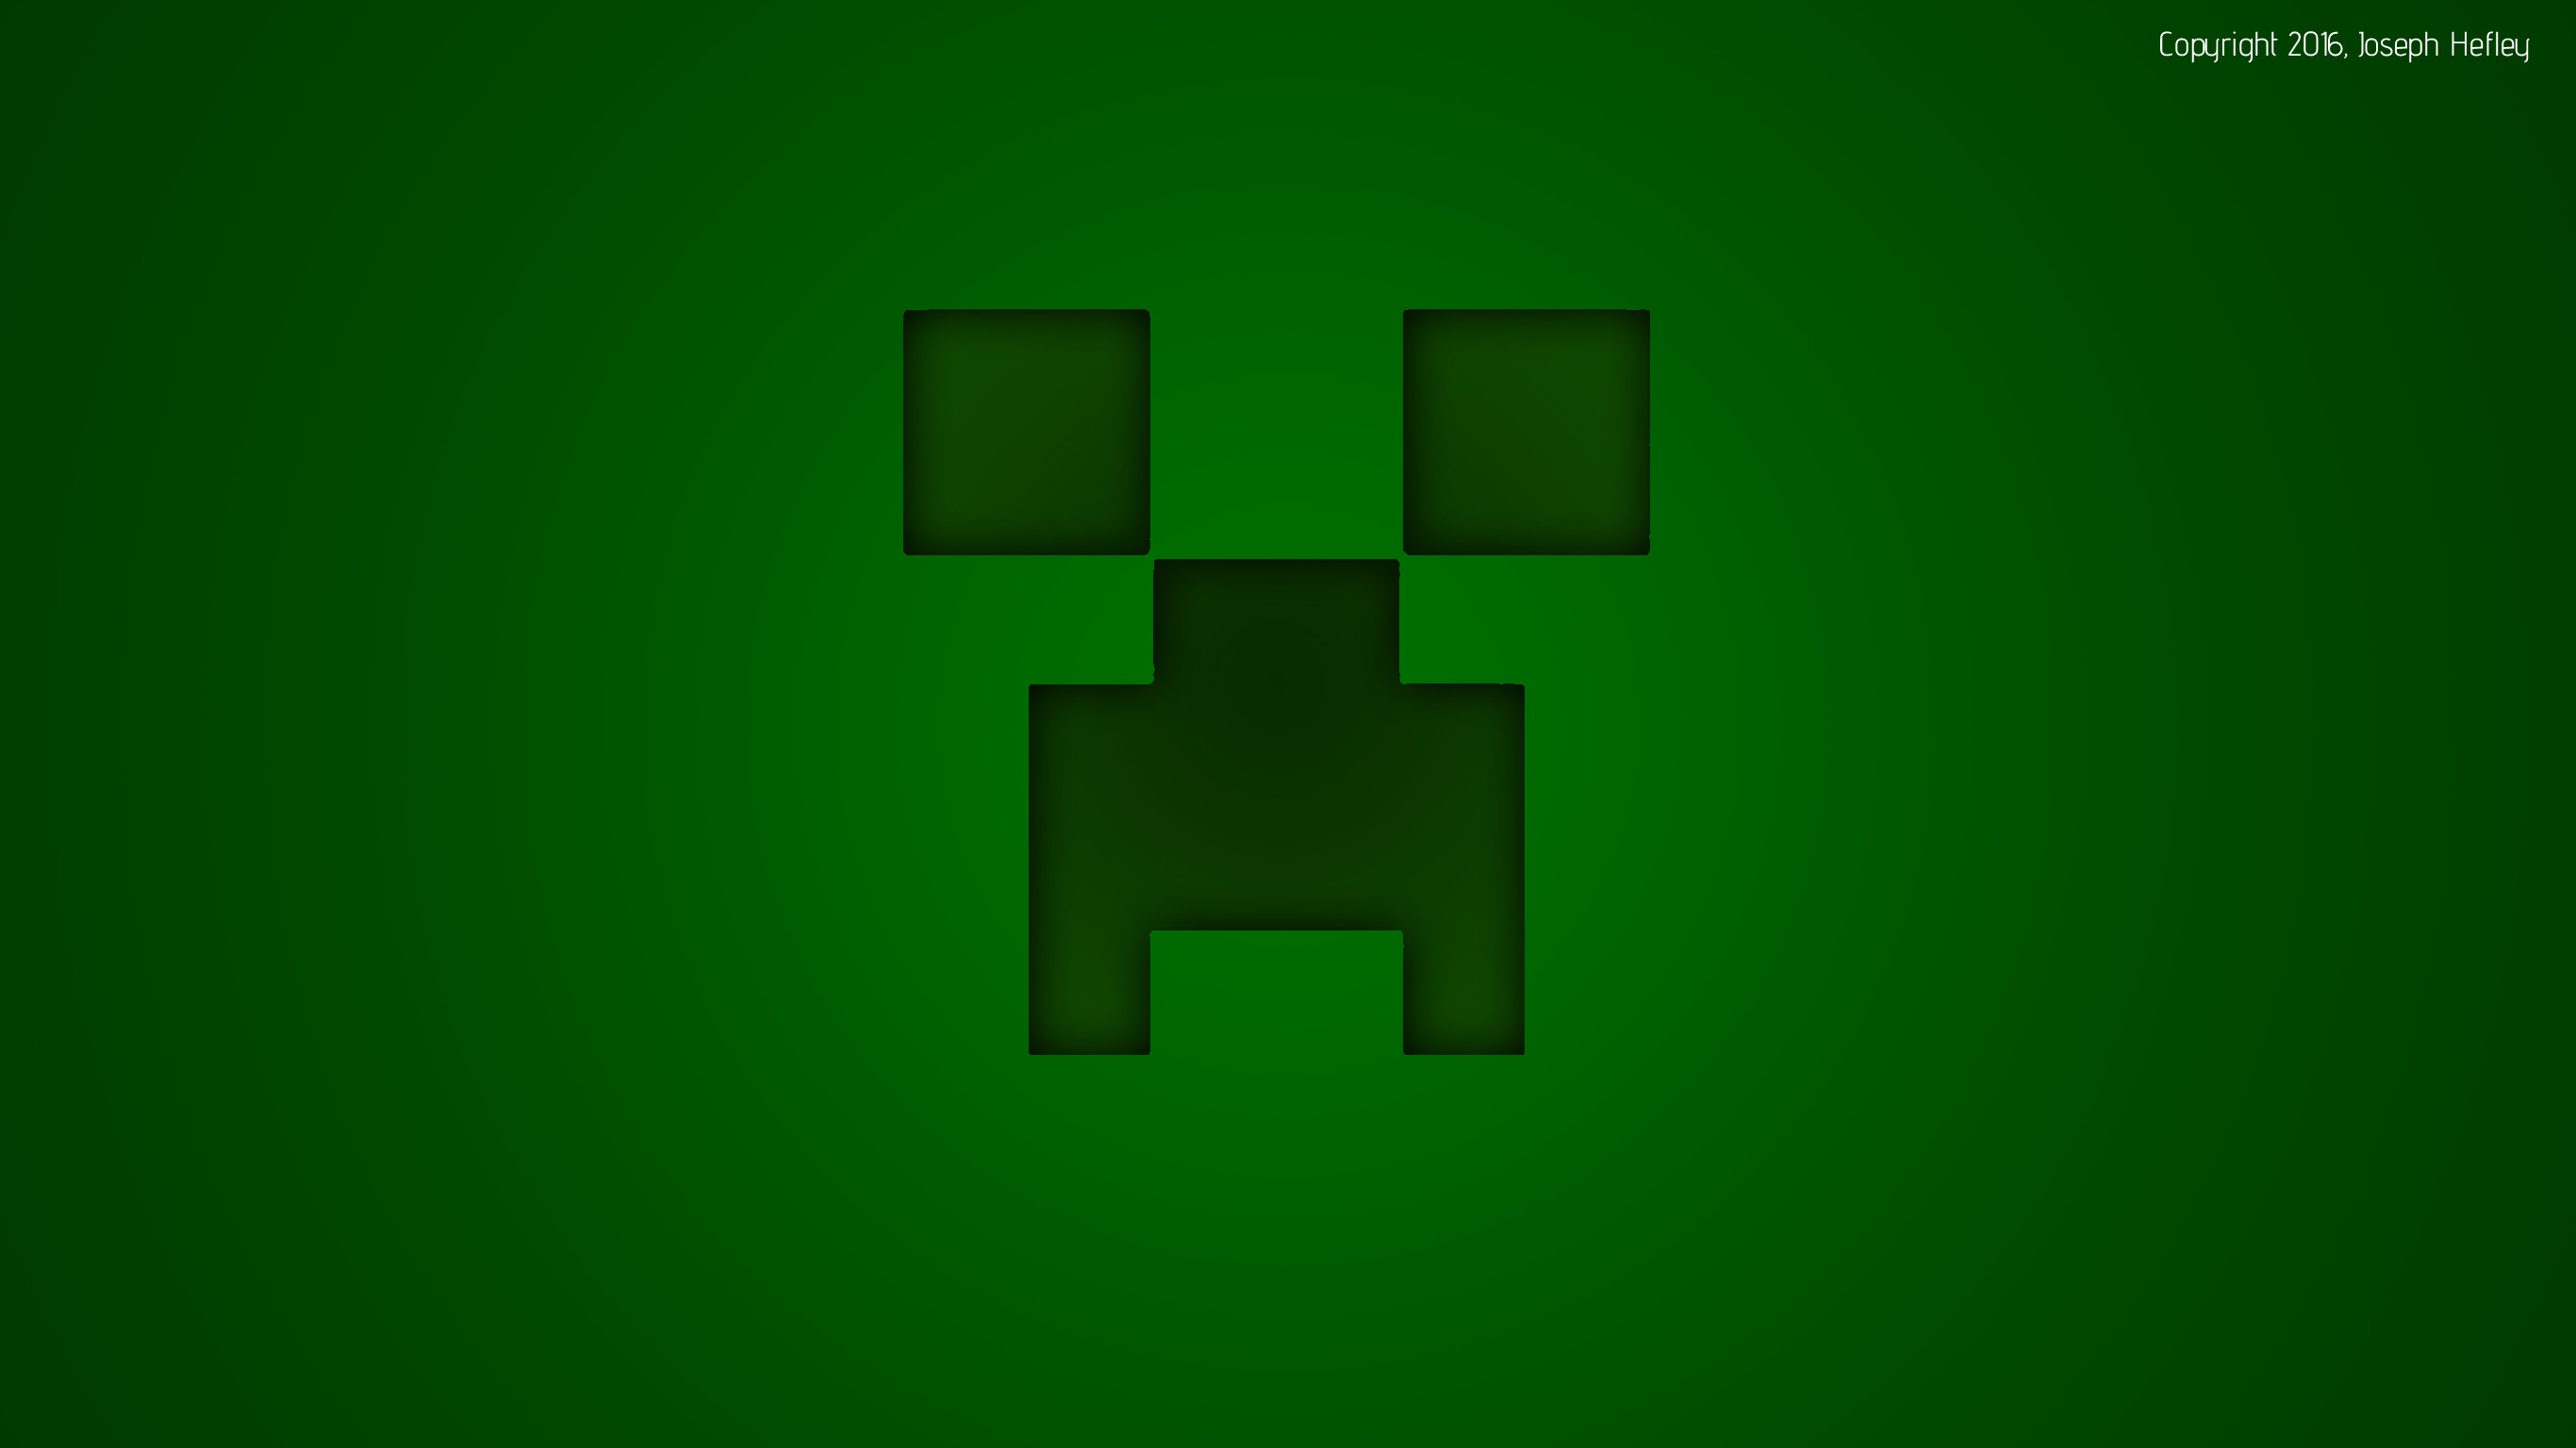 Best Wallpaper Minecraft Iphone6 - 1041781-minecraft-creeper-wallpaper-2732x1536-for-iphone-6  Perfect Image Reference_604516.jpg